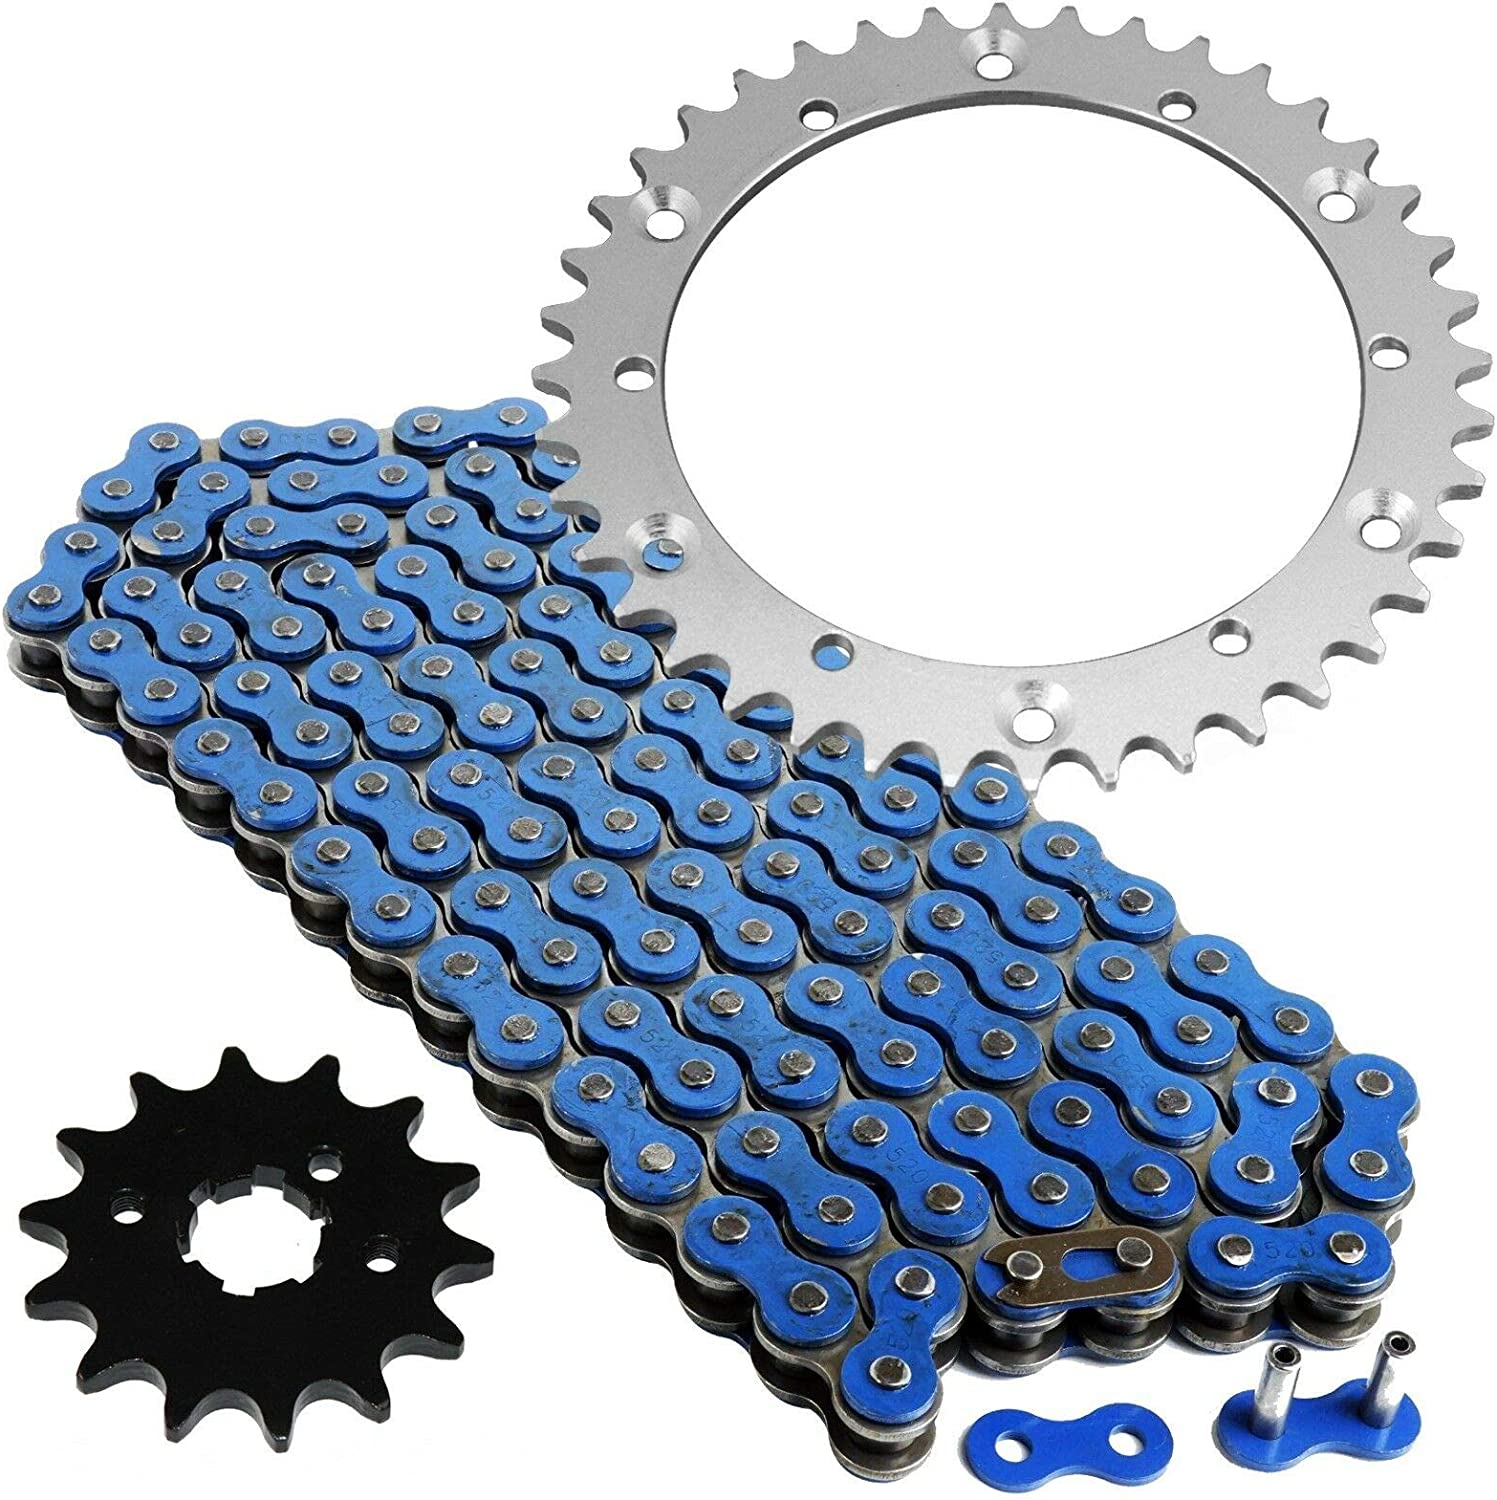 Caltric Blue Drive Chain And Sprockets Kit for Yamaha Banshee 350 Yfz350 1989-2006